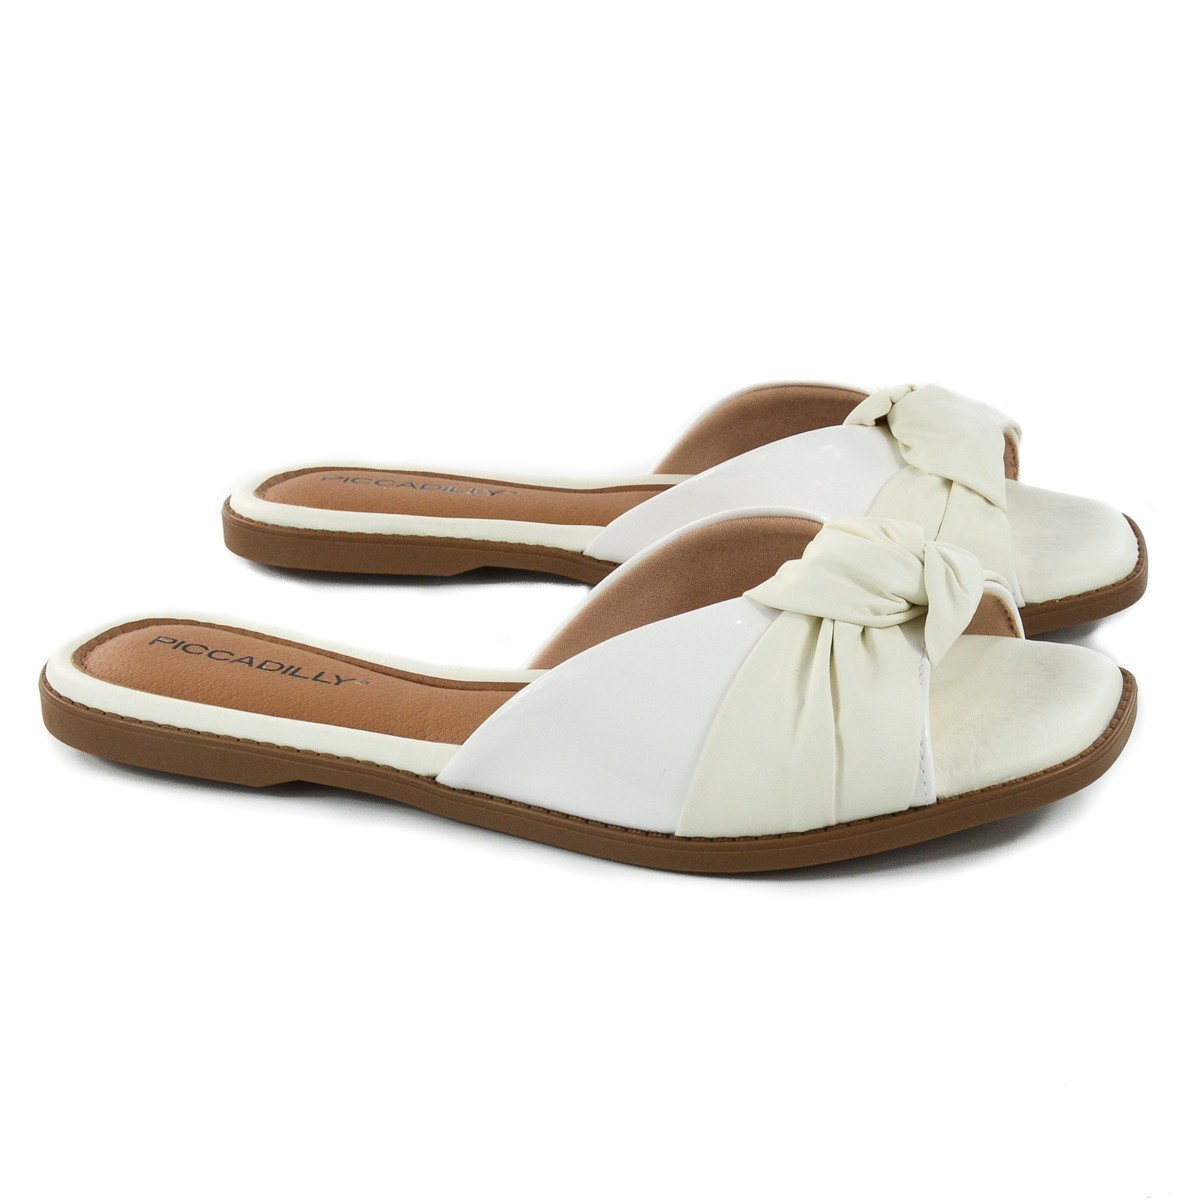 CHINELO FEM 508020 BRANCO OFF FLAT PICCADILLY 93092